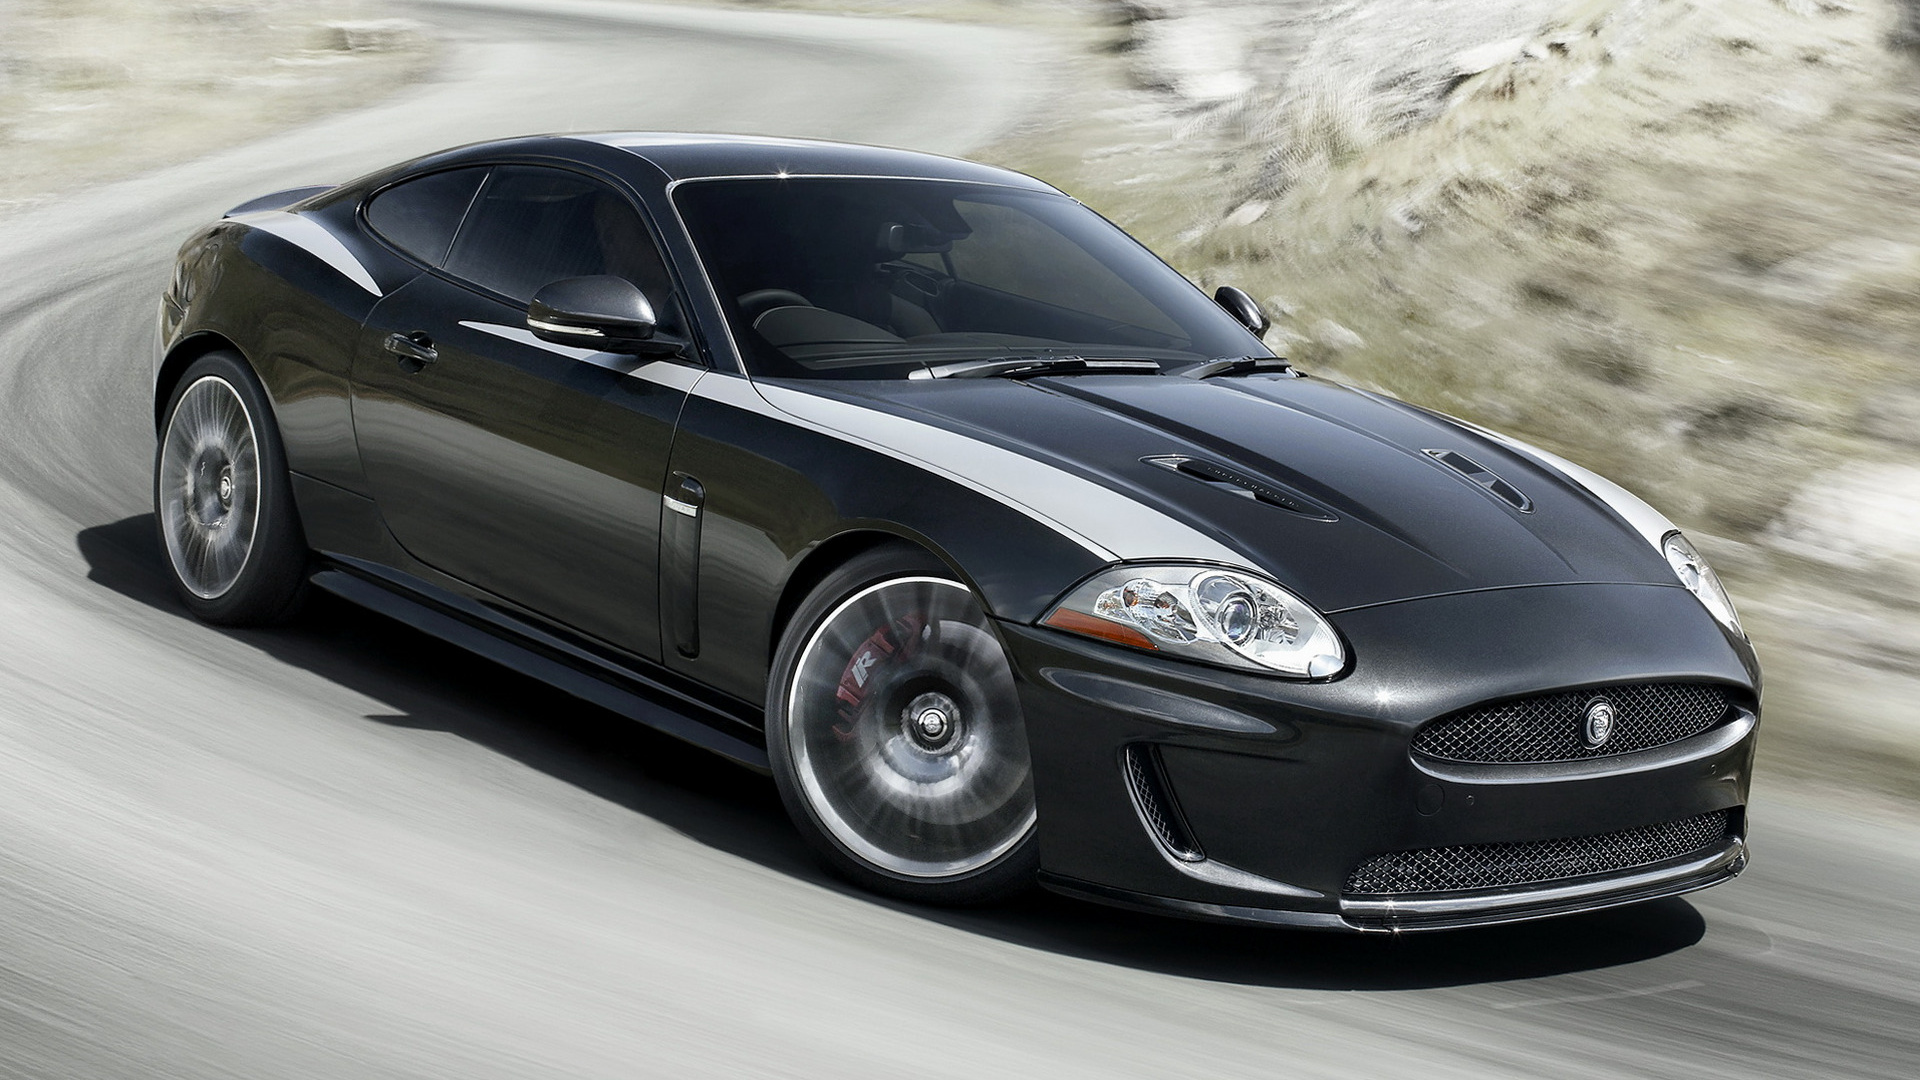 2010 Jaguar XKR 75 Coupe (UK) - Wallpapers and HD Images ...